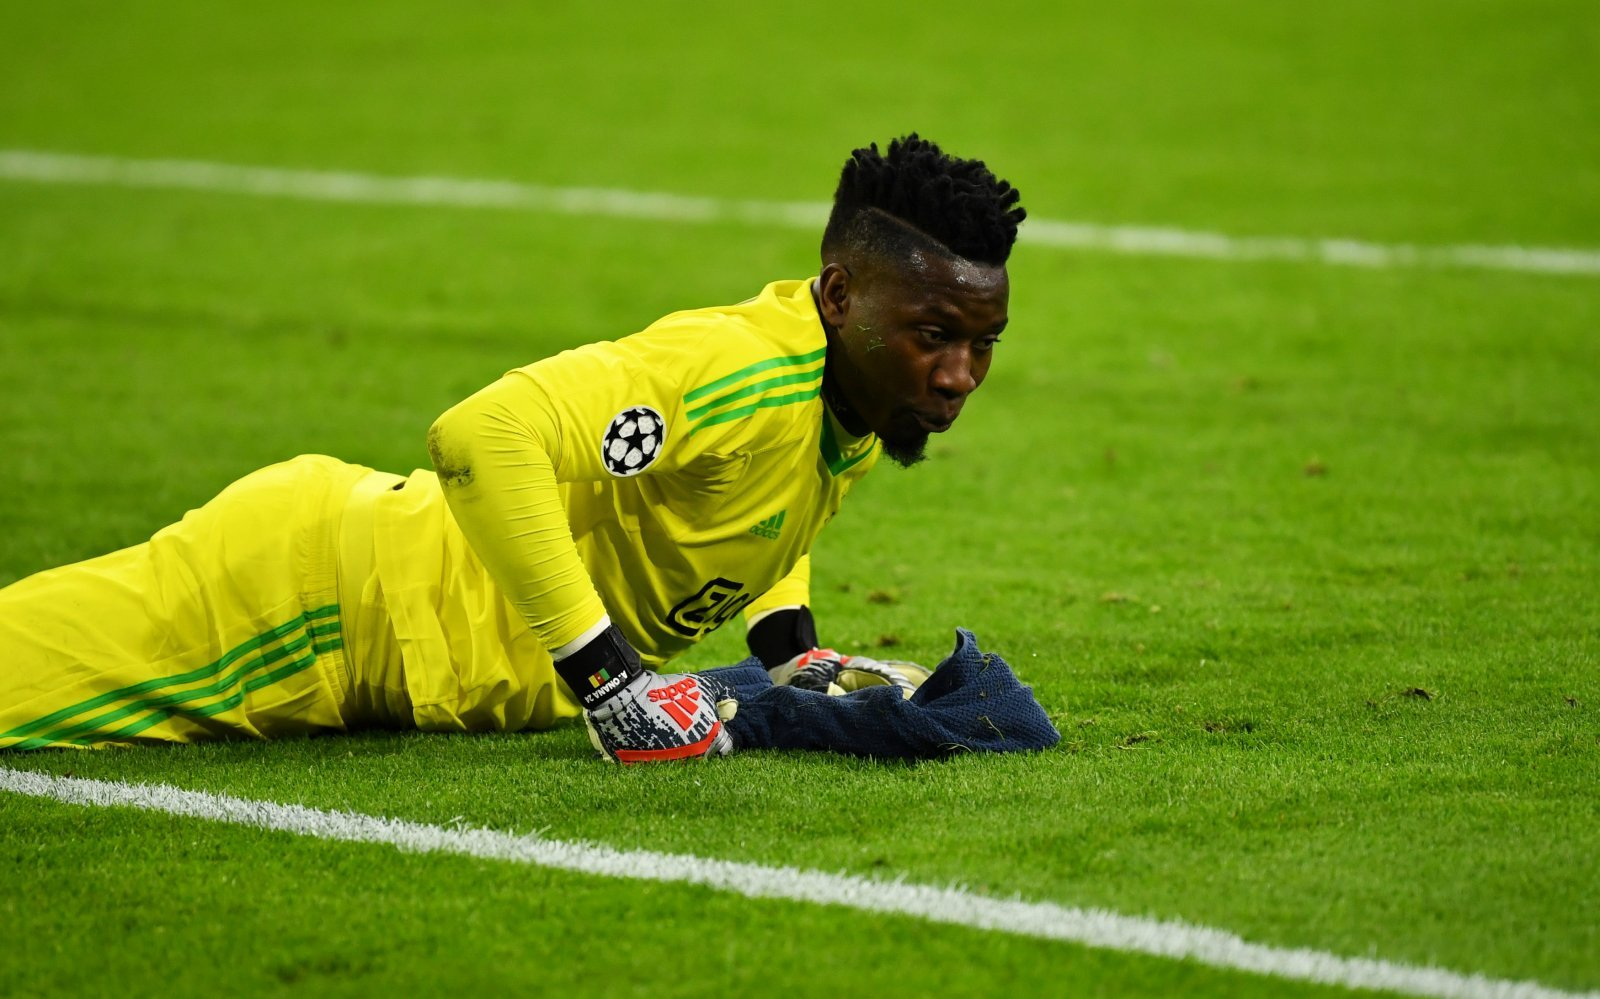 Manchester United: Andre Onana can be next Old Trafford hero if De Gea leaves